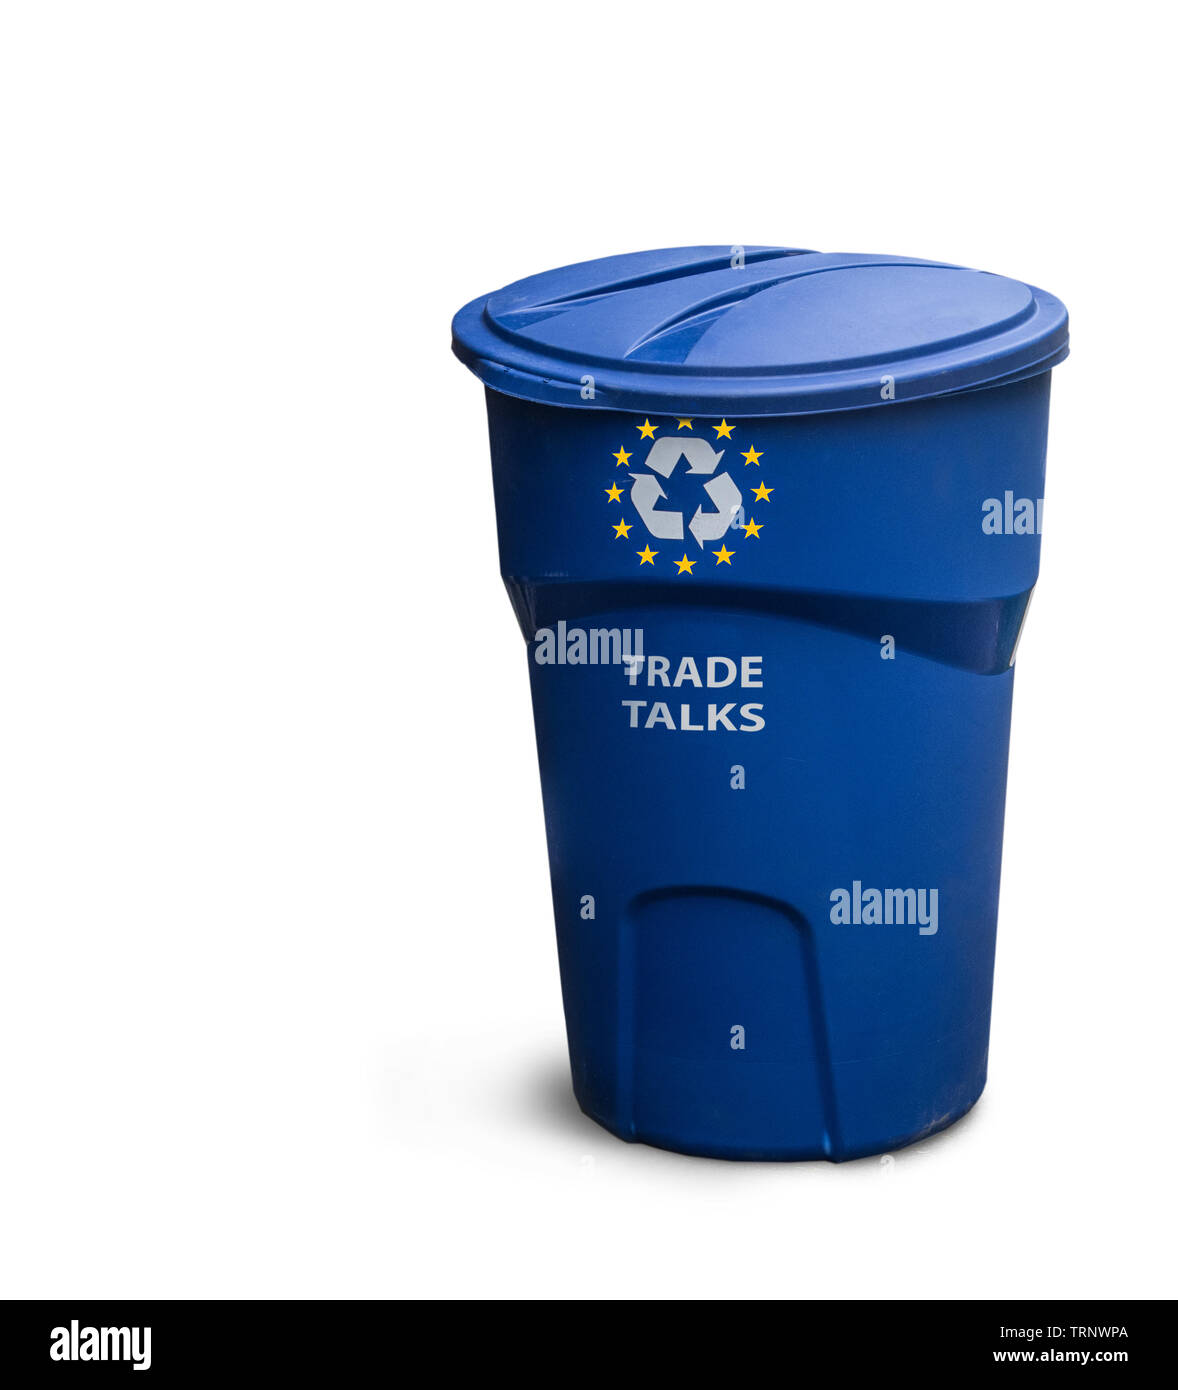 A recycling bin with the symbol of the EU. Below we see the words: TRADE TALKS. - Stock Image